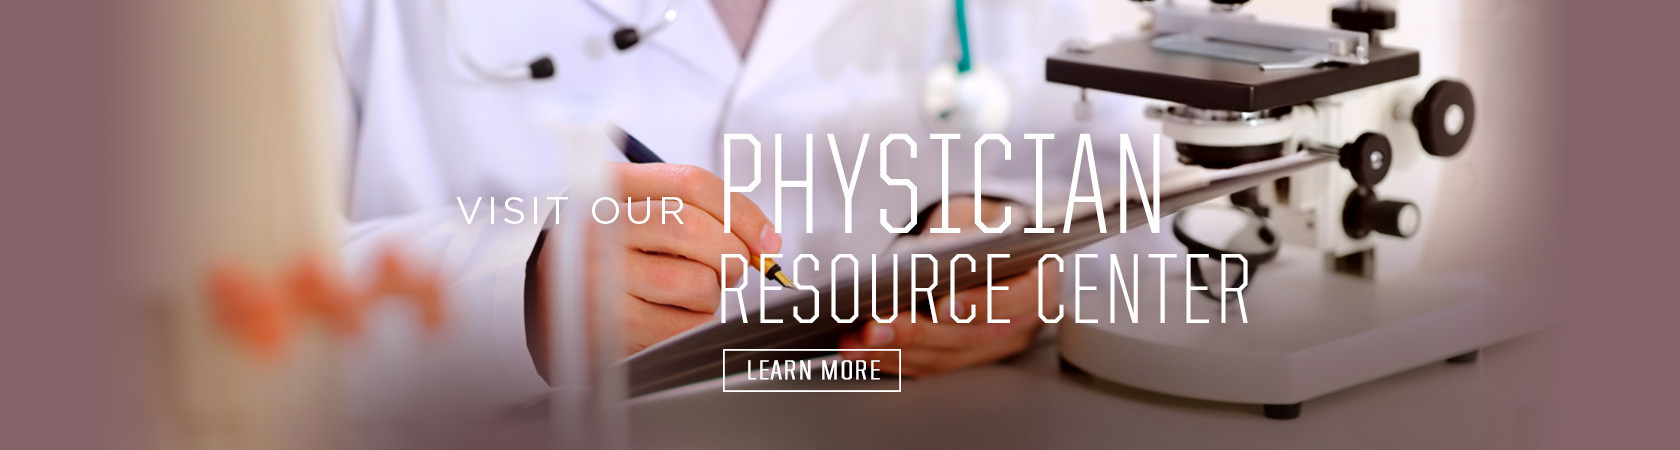 Home-Carousel-physician-resource4